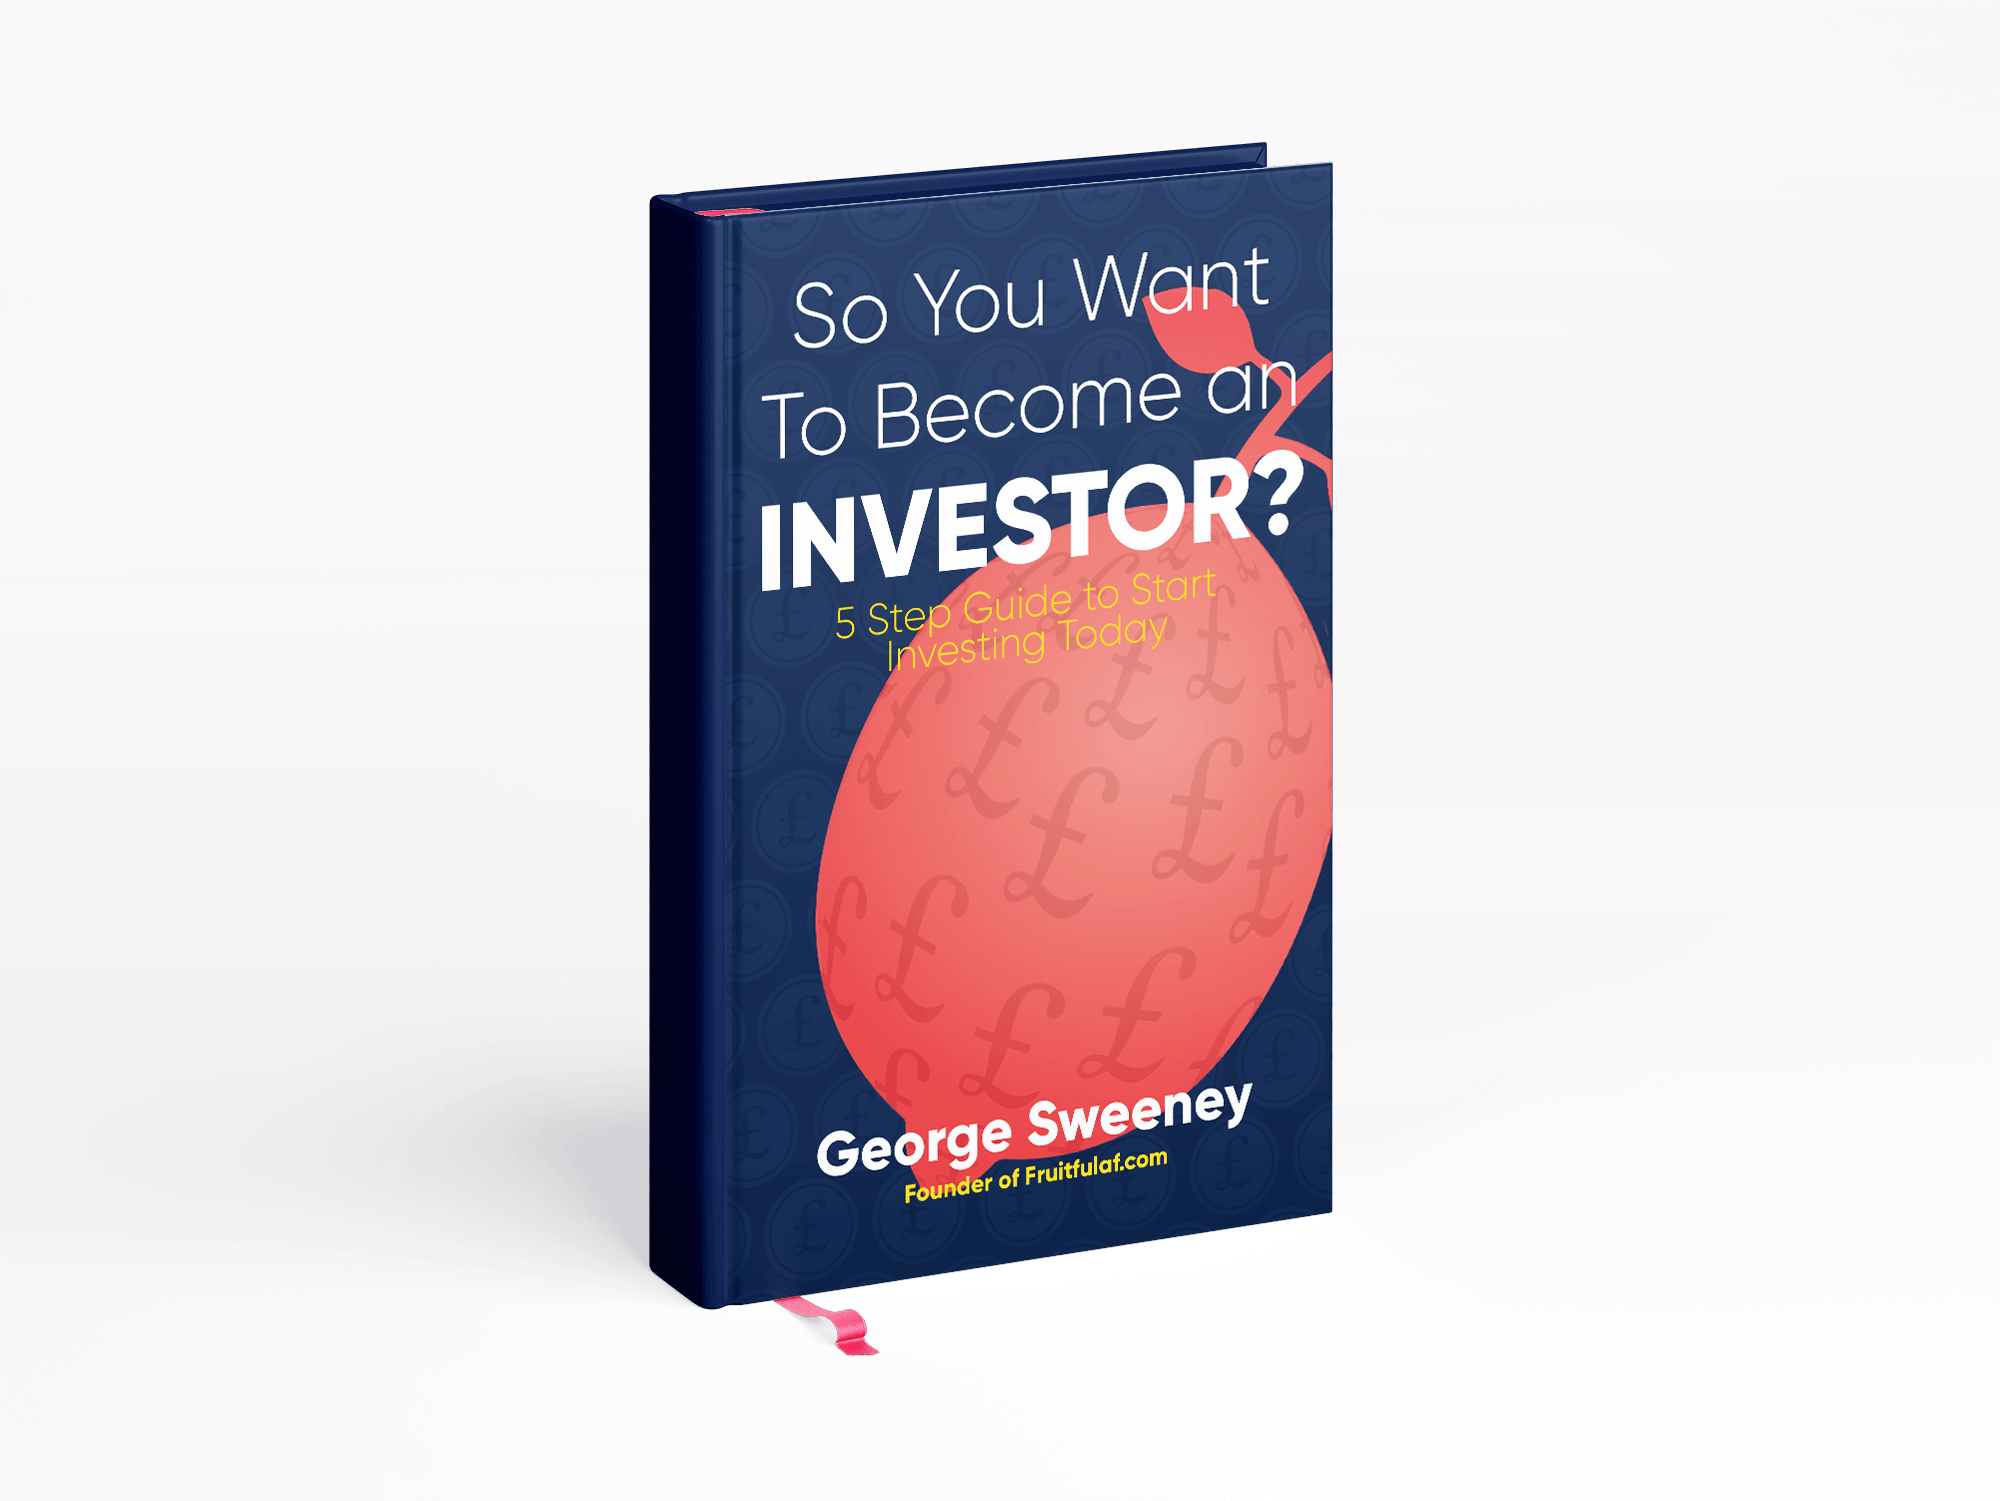 So You Want to Become an Investor - 5 Step Guide to Investing Today by George Sweeney